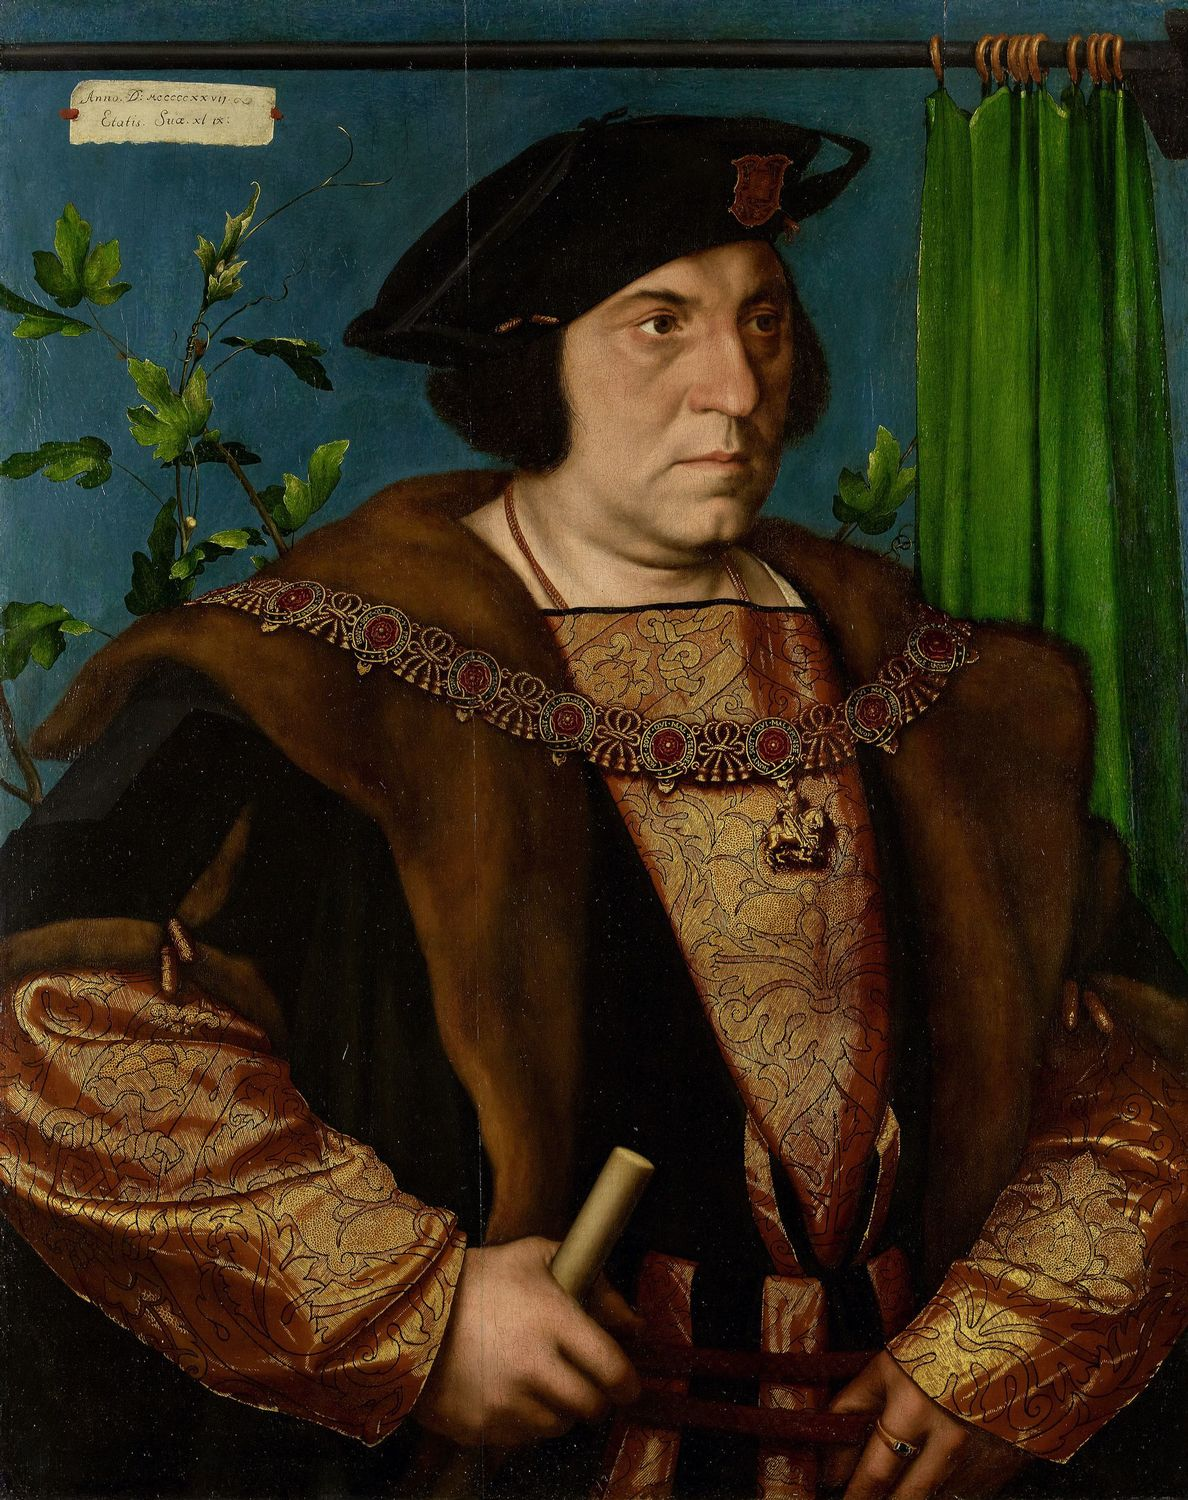 Hans Holbein the Younger (1497/8-1543) - Sir Henry Guildford (1489-1532)